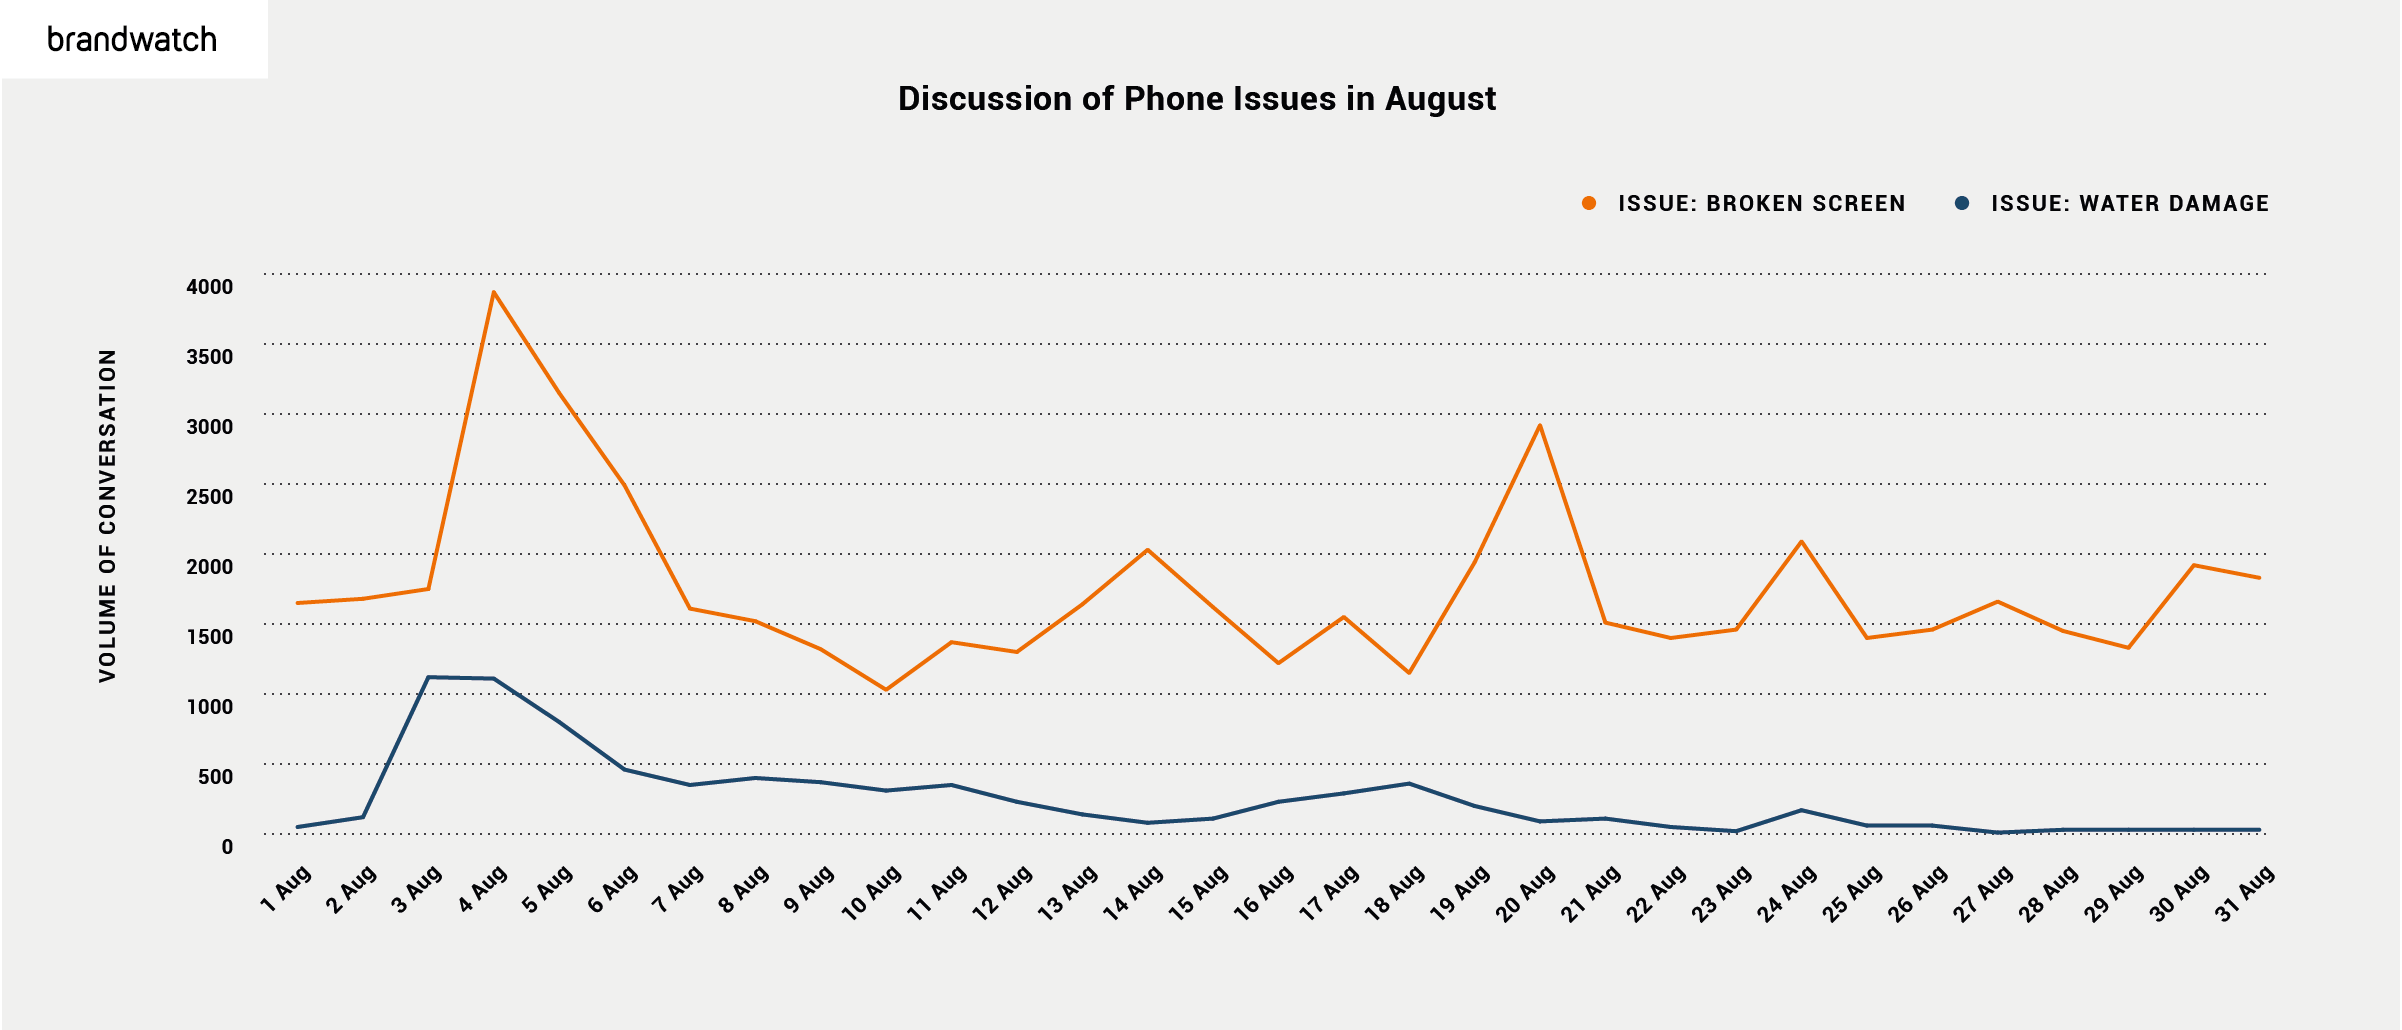 Line chart showing iPhone related conversations over time, split out by 'broken screen' and 'water damage' topics